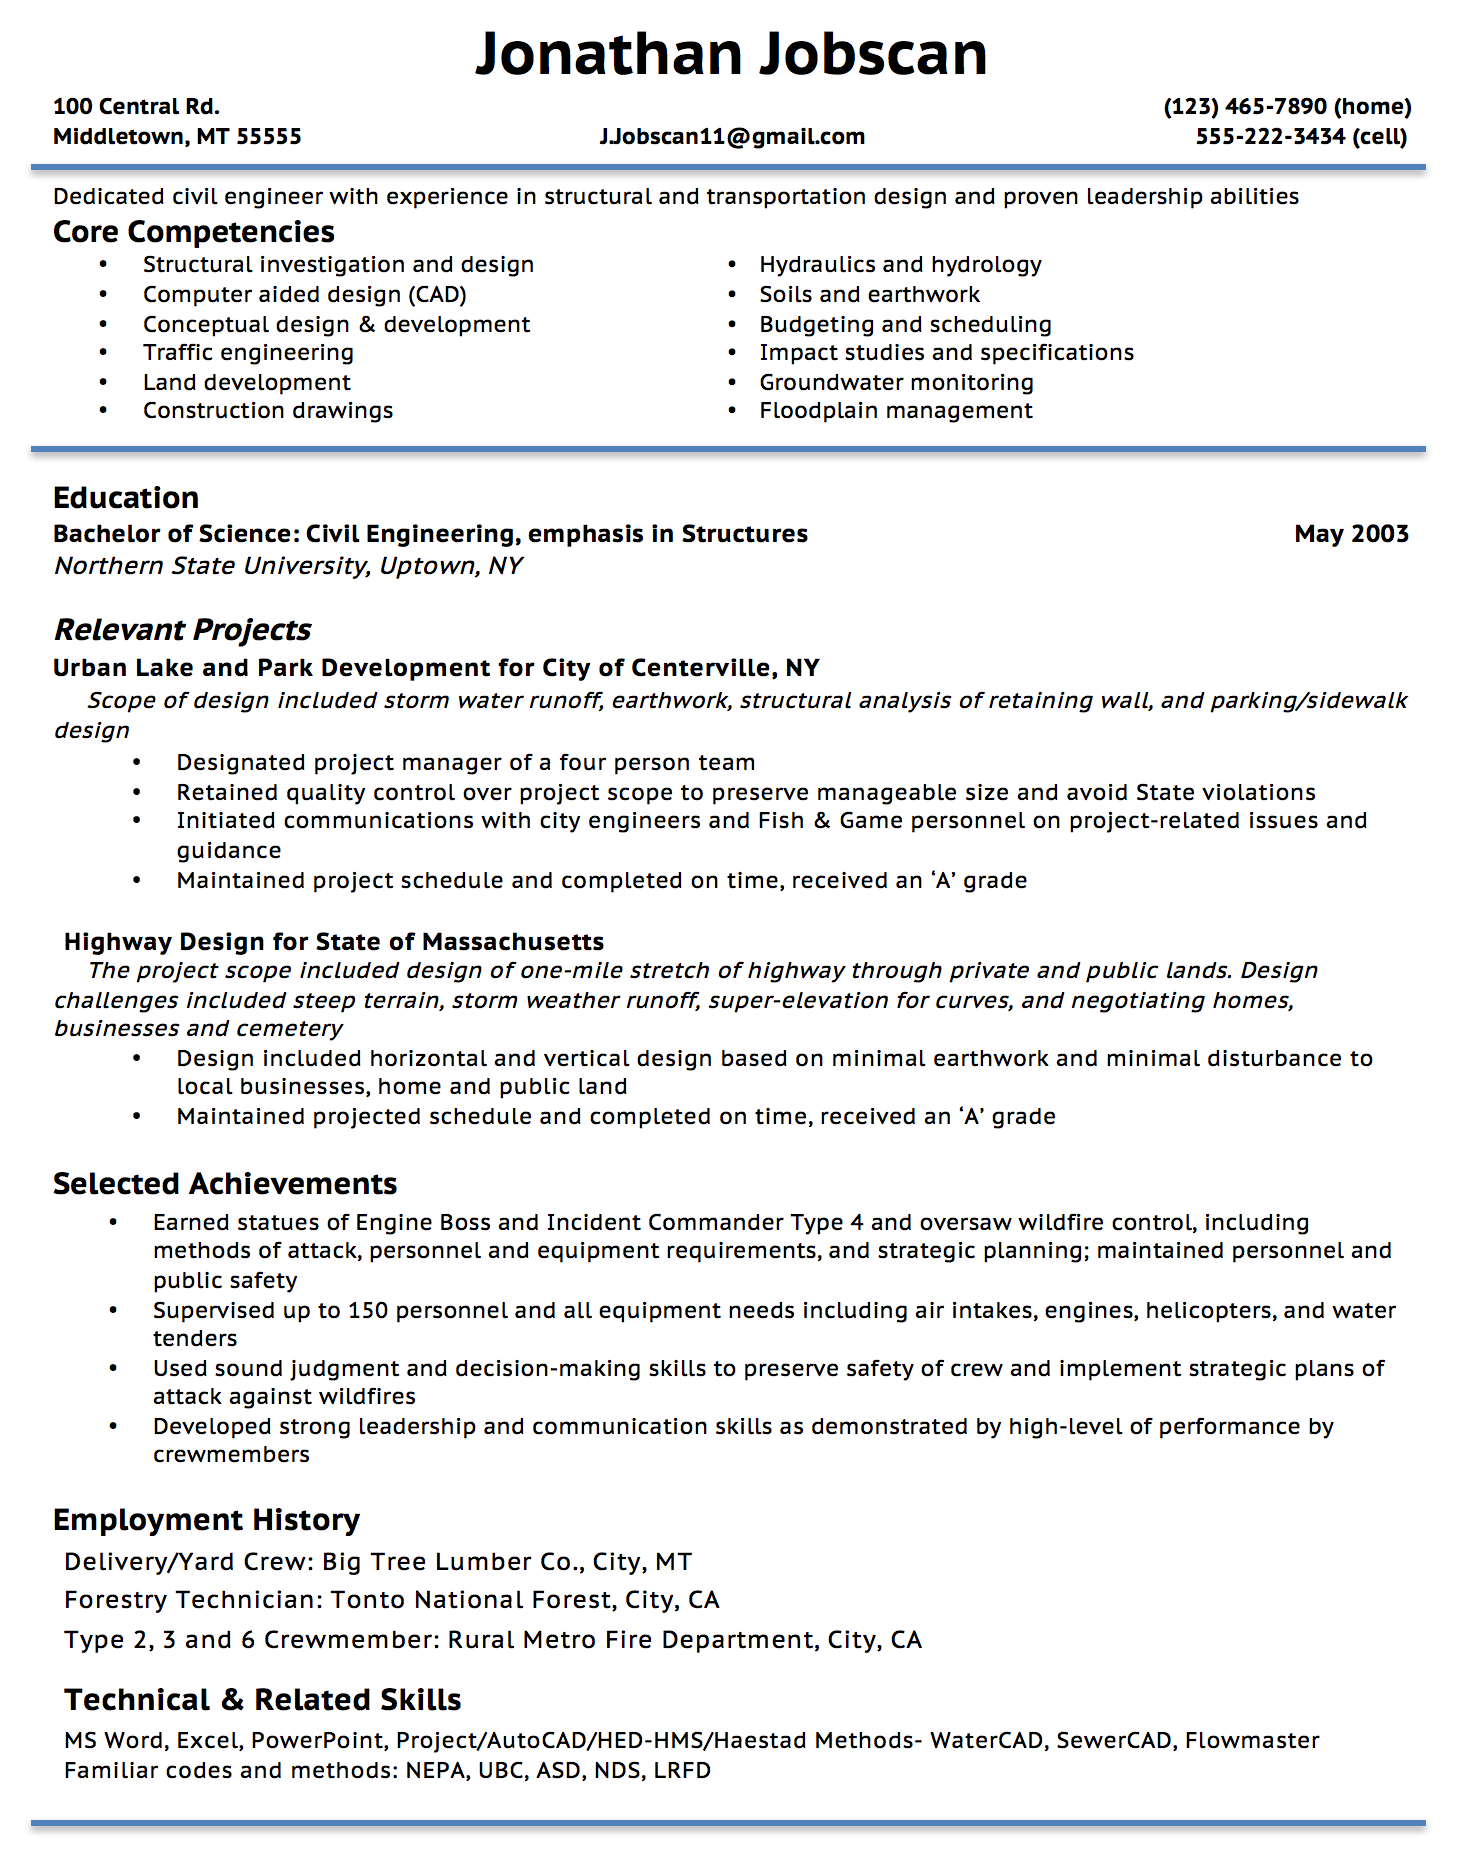 Picnictoimpeachus  Mesmerizing Resume Writing Guide  Jobscan With Great Example Of A Functional Resume Format With Breathtaking Sample Hr Resumes Also Verbs Resume In Addition Artist Resume Templates And Skills To List In Resume As Well As Insurance Resumes Additionally Cook Resumes From Jobscanco With Picnictoimpeachus  Great Resume Writing Guide  Jobscan With Breathtaking Example Of A Functional Resume Format And Mesmerizing Sample Hr Resumes Also Verbs Resume In Addition Artist Resume Templates From Jobscanco